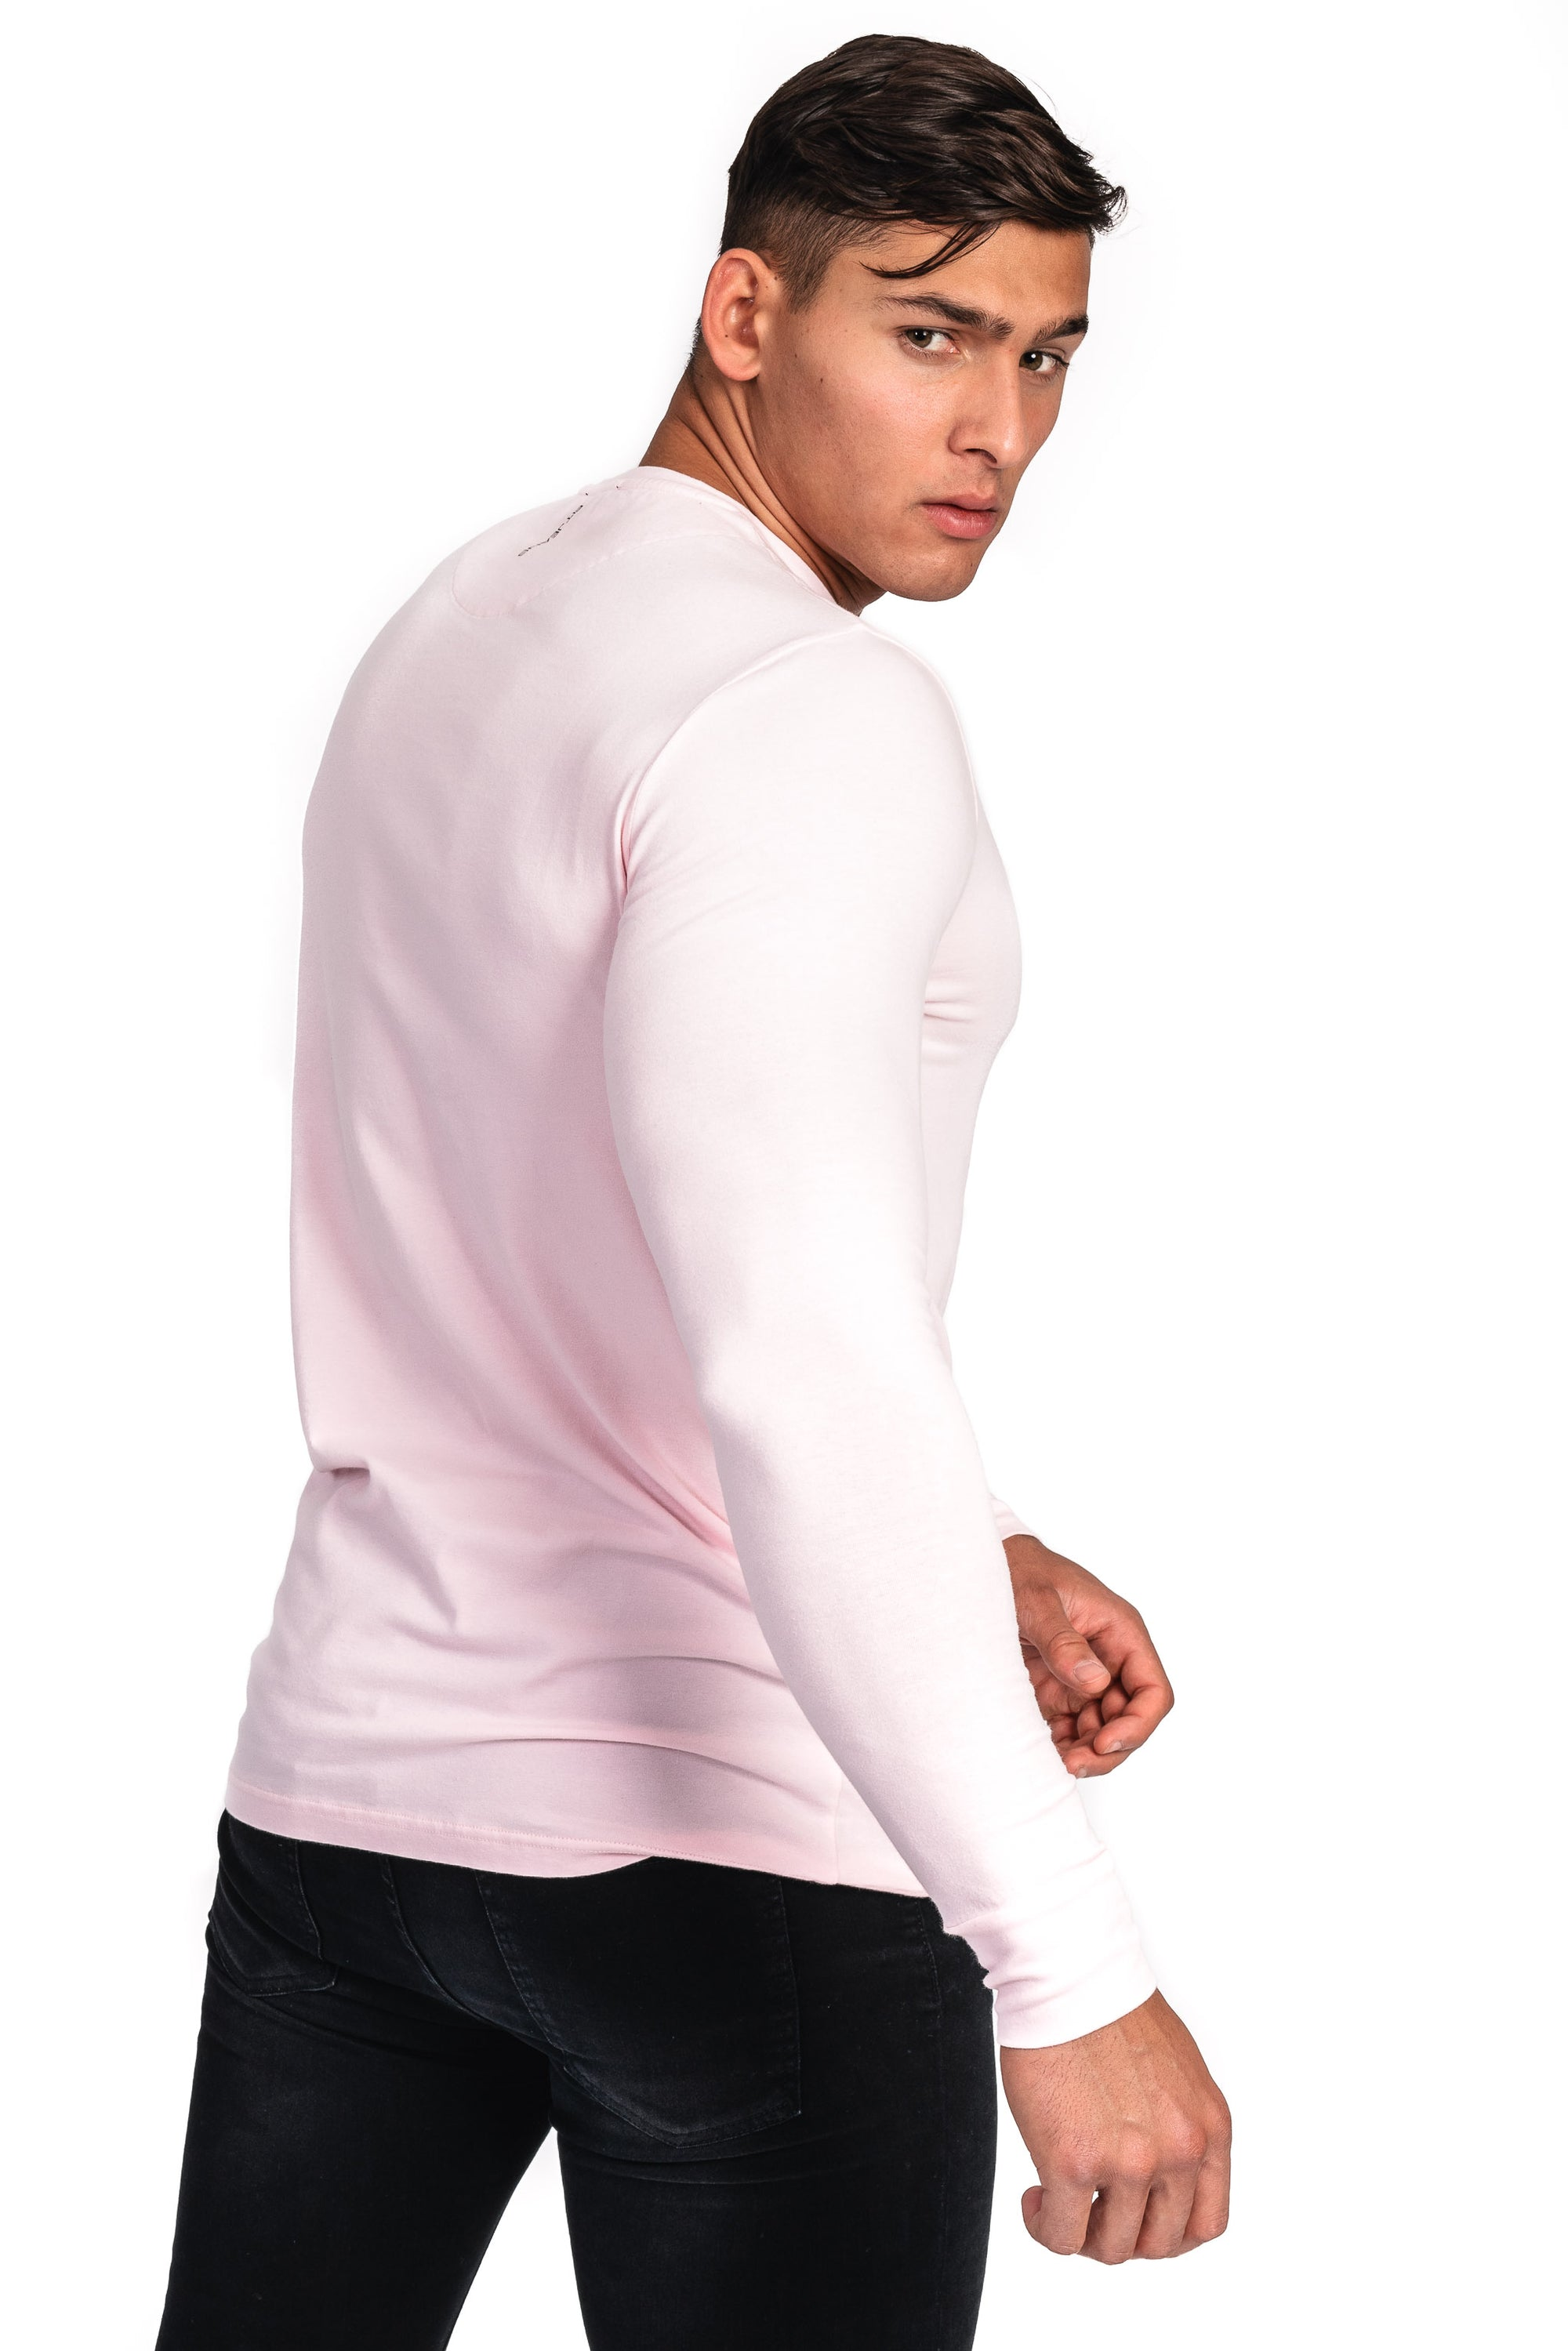 Mens Long Sleeve T Shirt - Vintage Pink